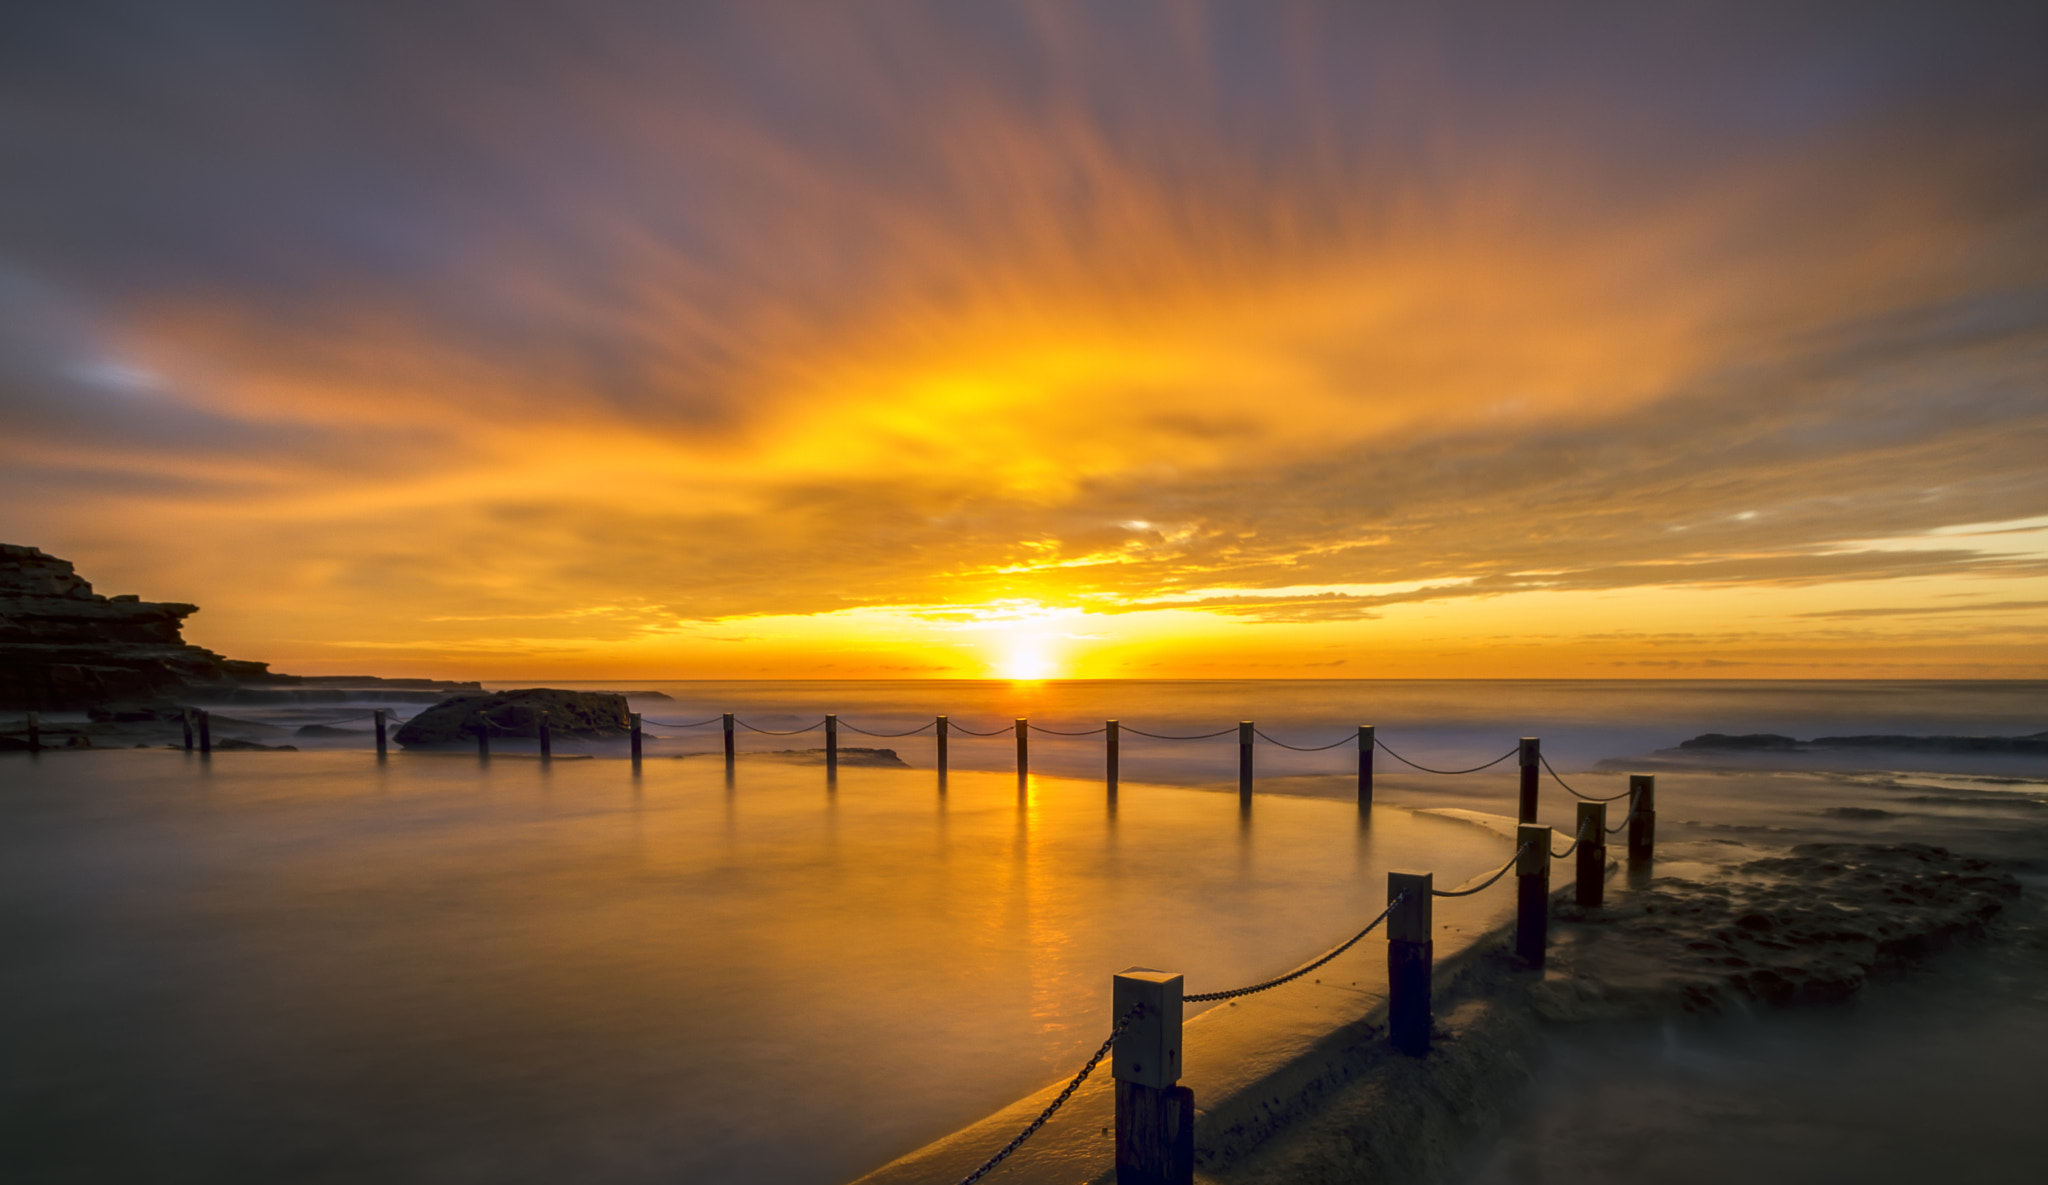 Photograph Passion in the Sky by Mark Lucey on 500px